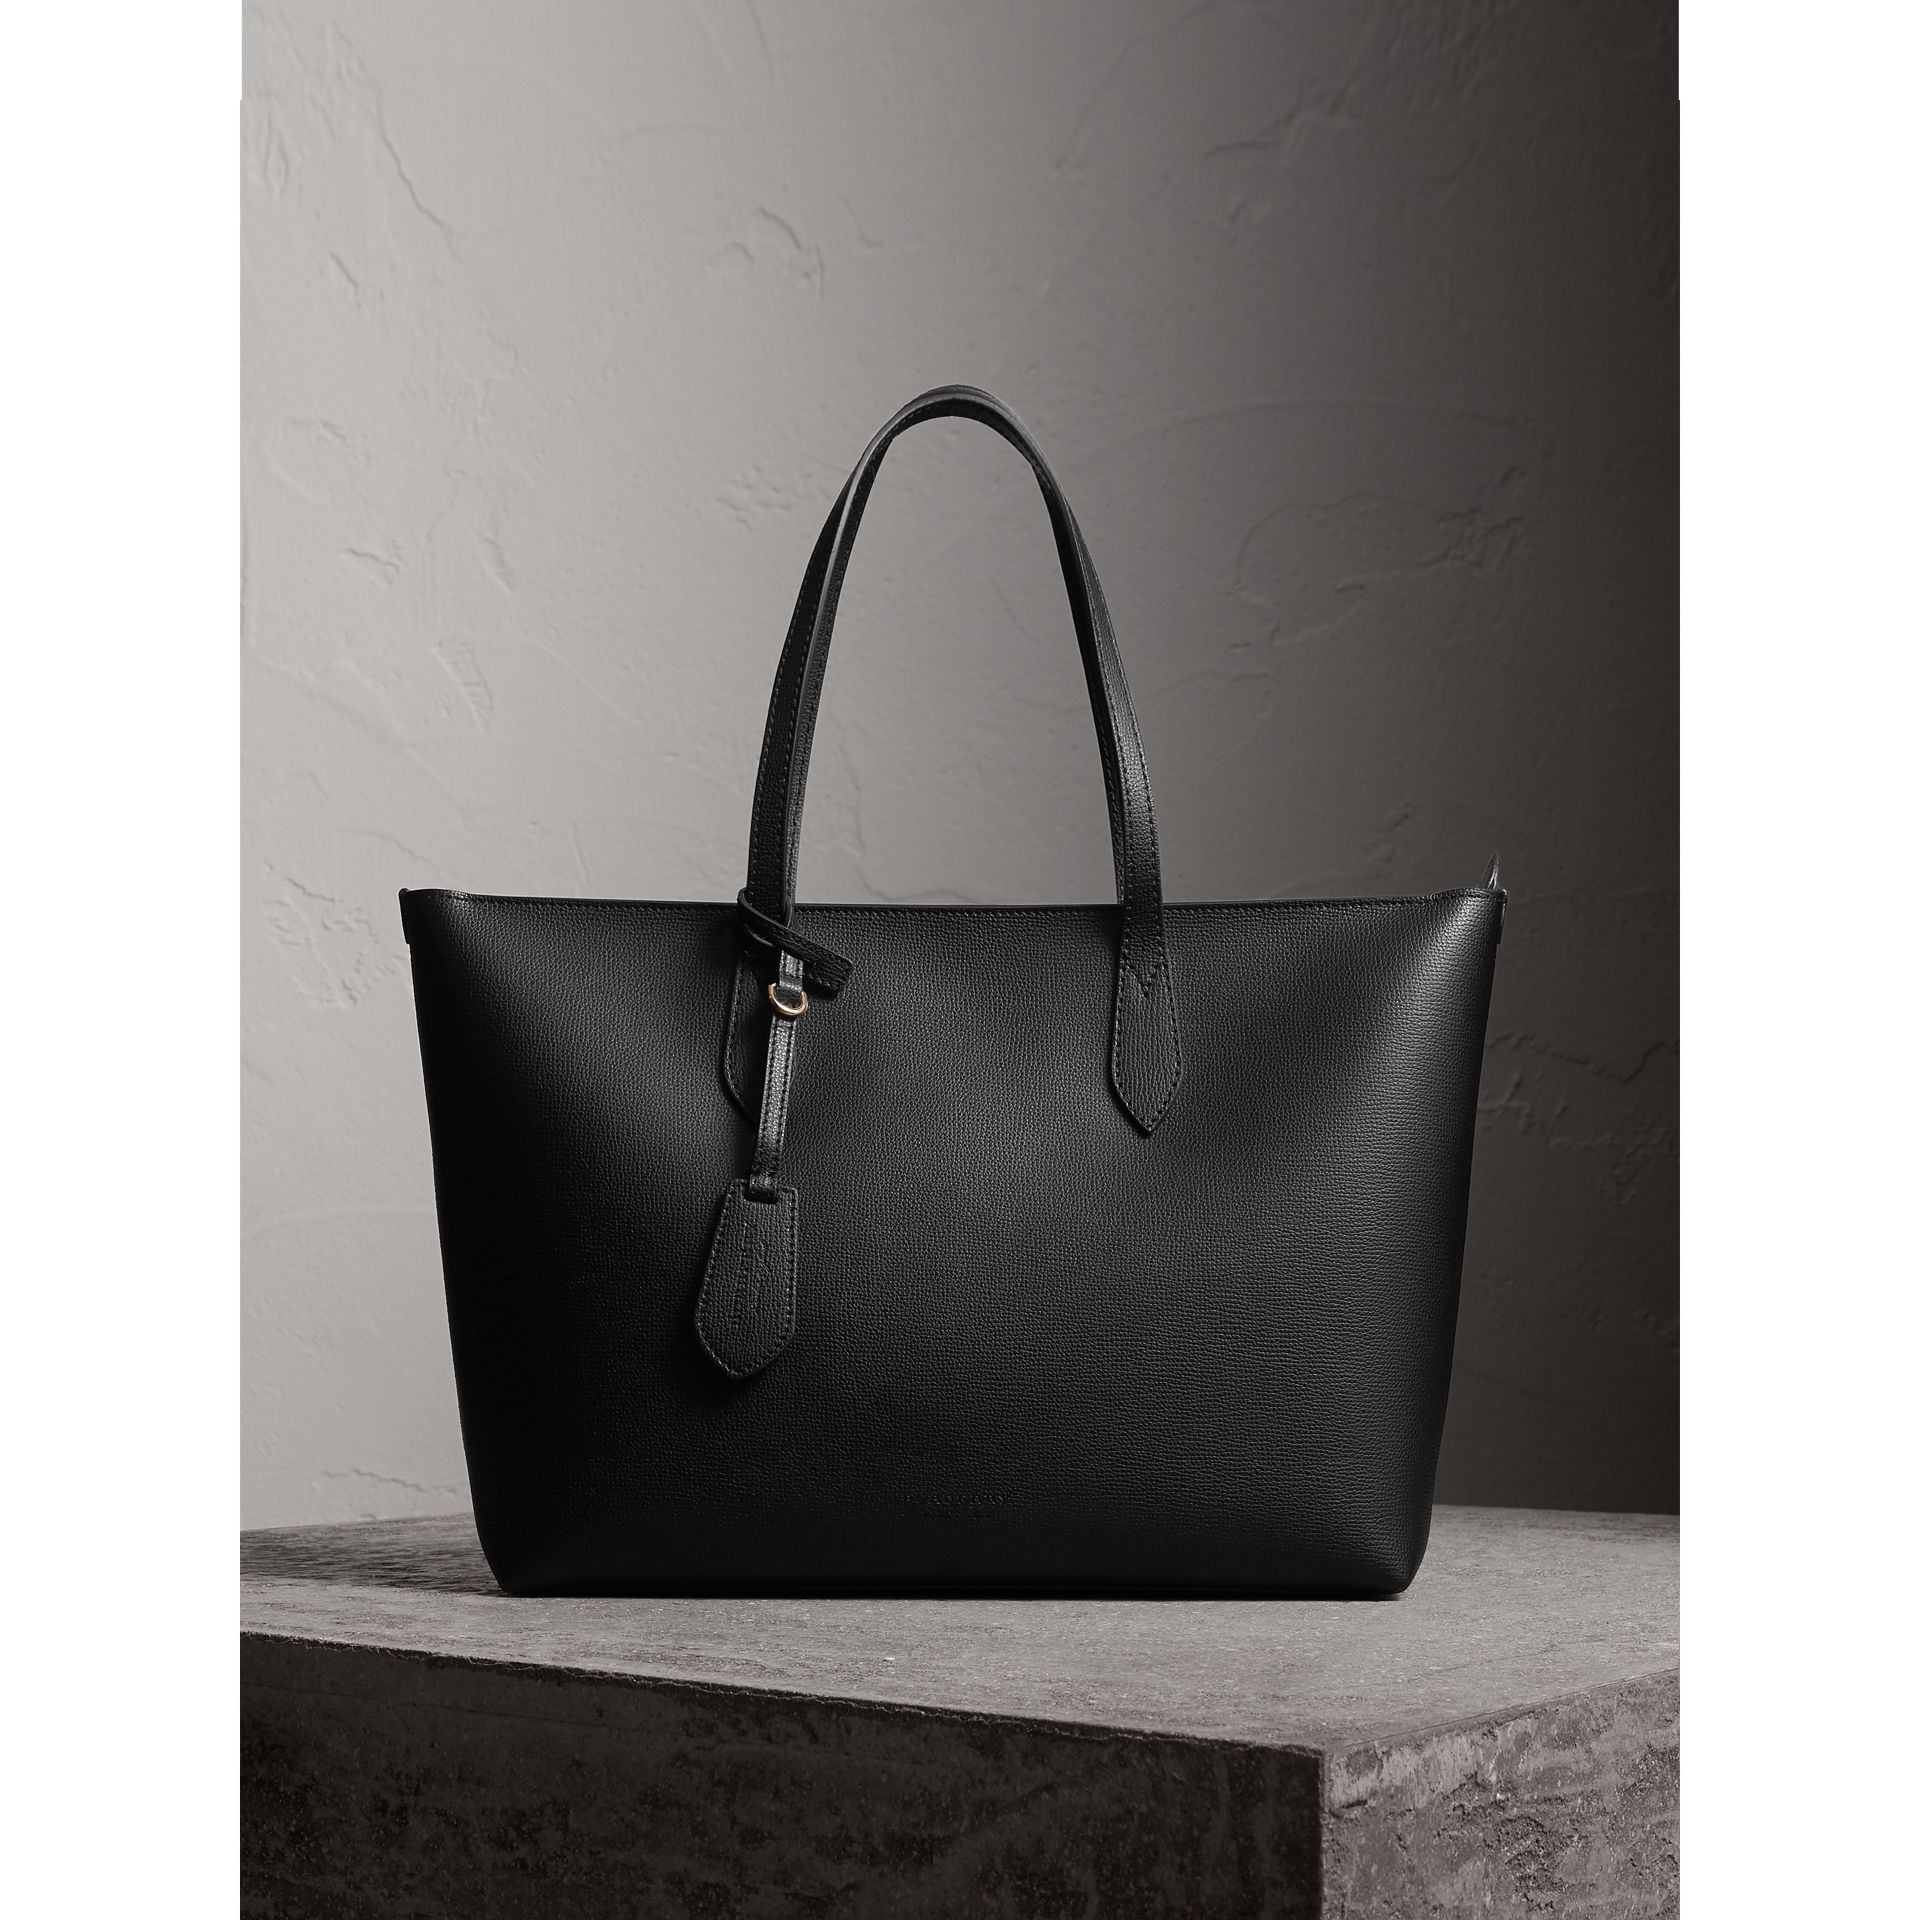 Medium Coated Leather Tote in Black - Women | Burberry - gallery image 1